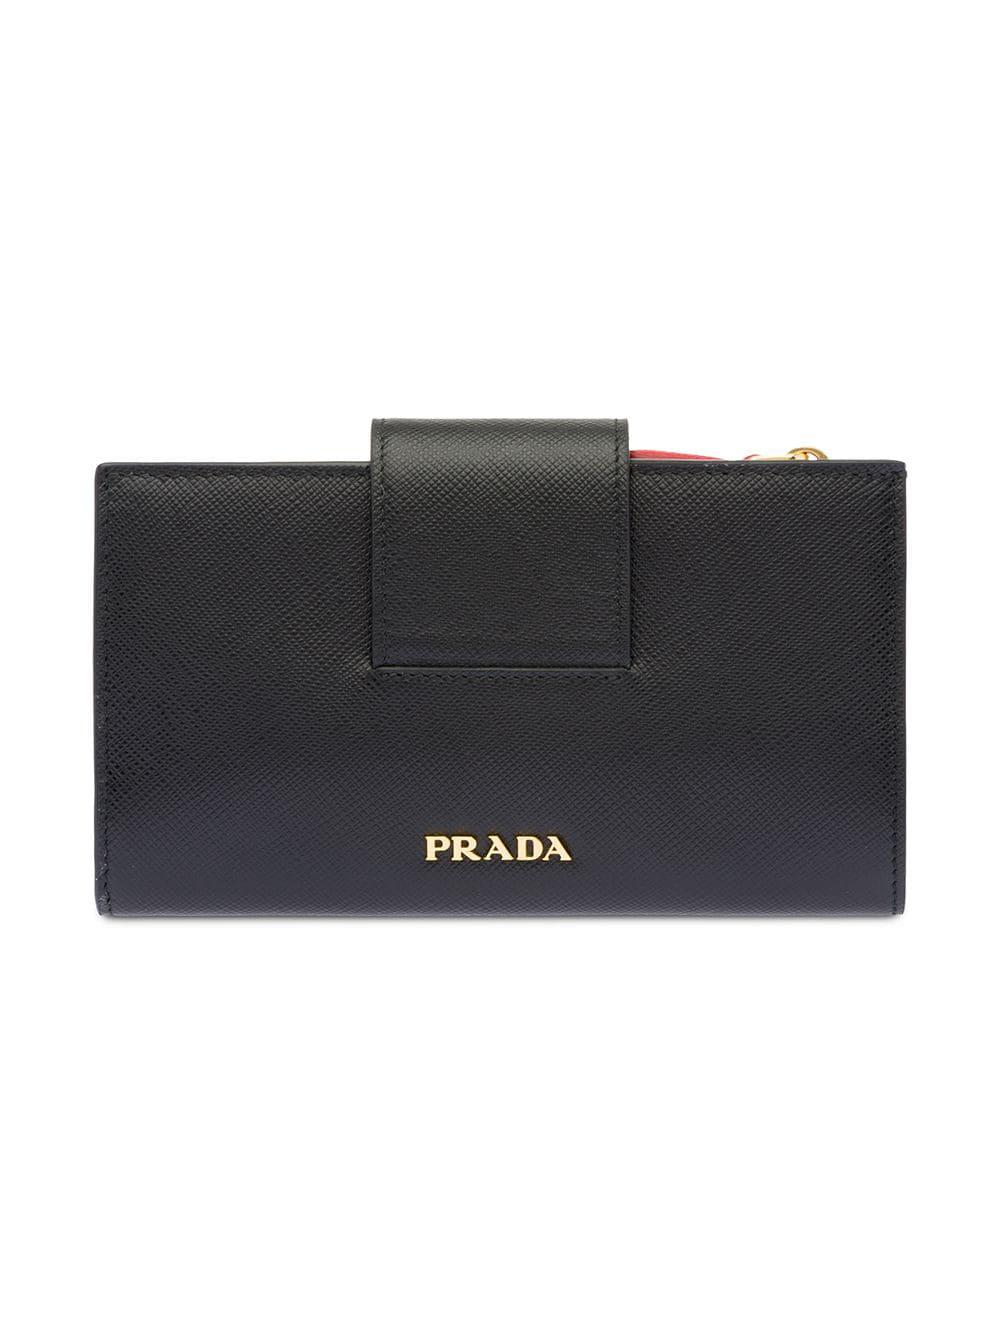 0f2297d729a0 Lyst - Prada Medium Saffiano Leather Wallet in Black